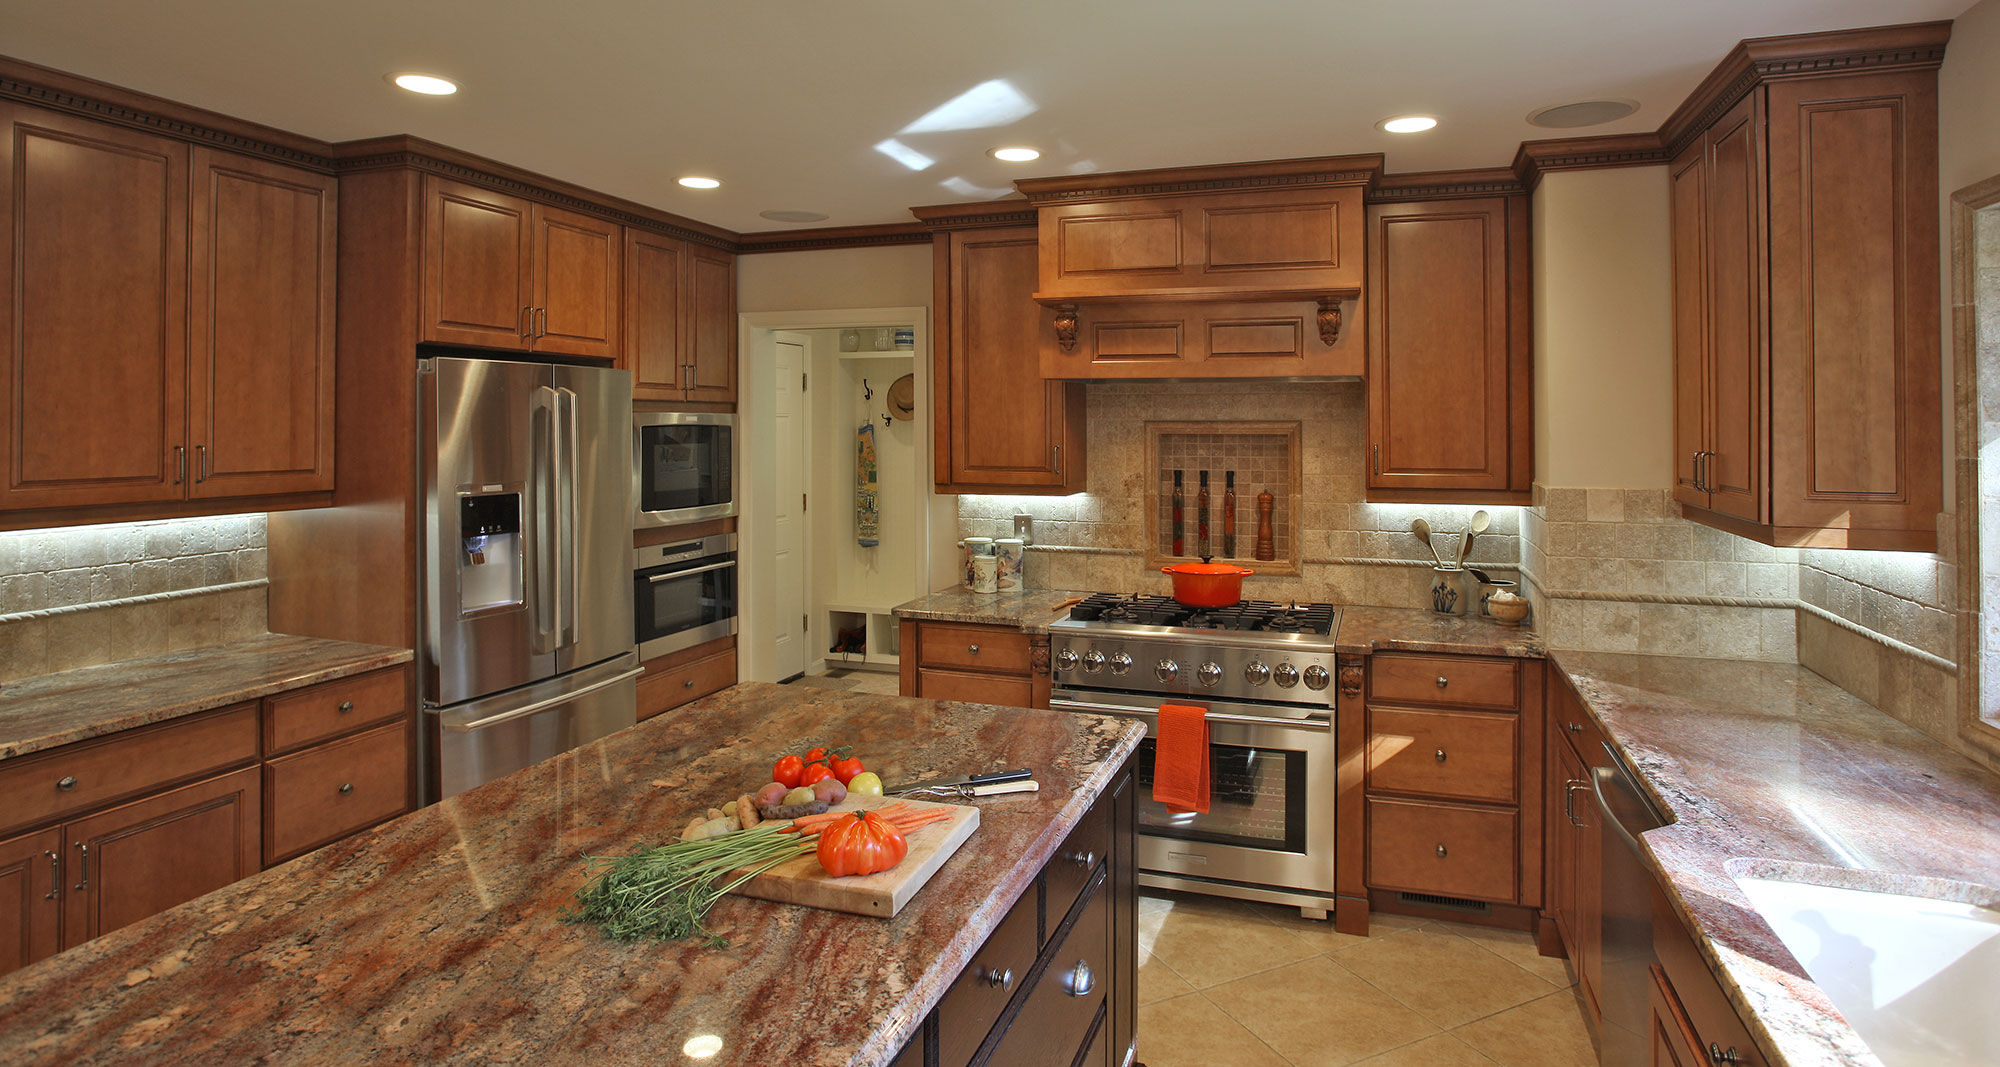 Kitchen Designers In Maryland Exterior Kitchen And Bath Remodeling Serving Northern Virginia Maryland .